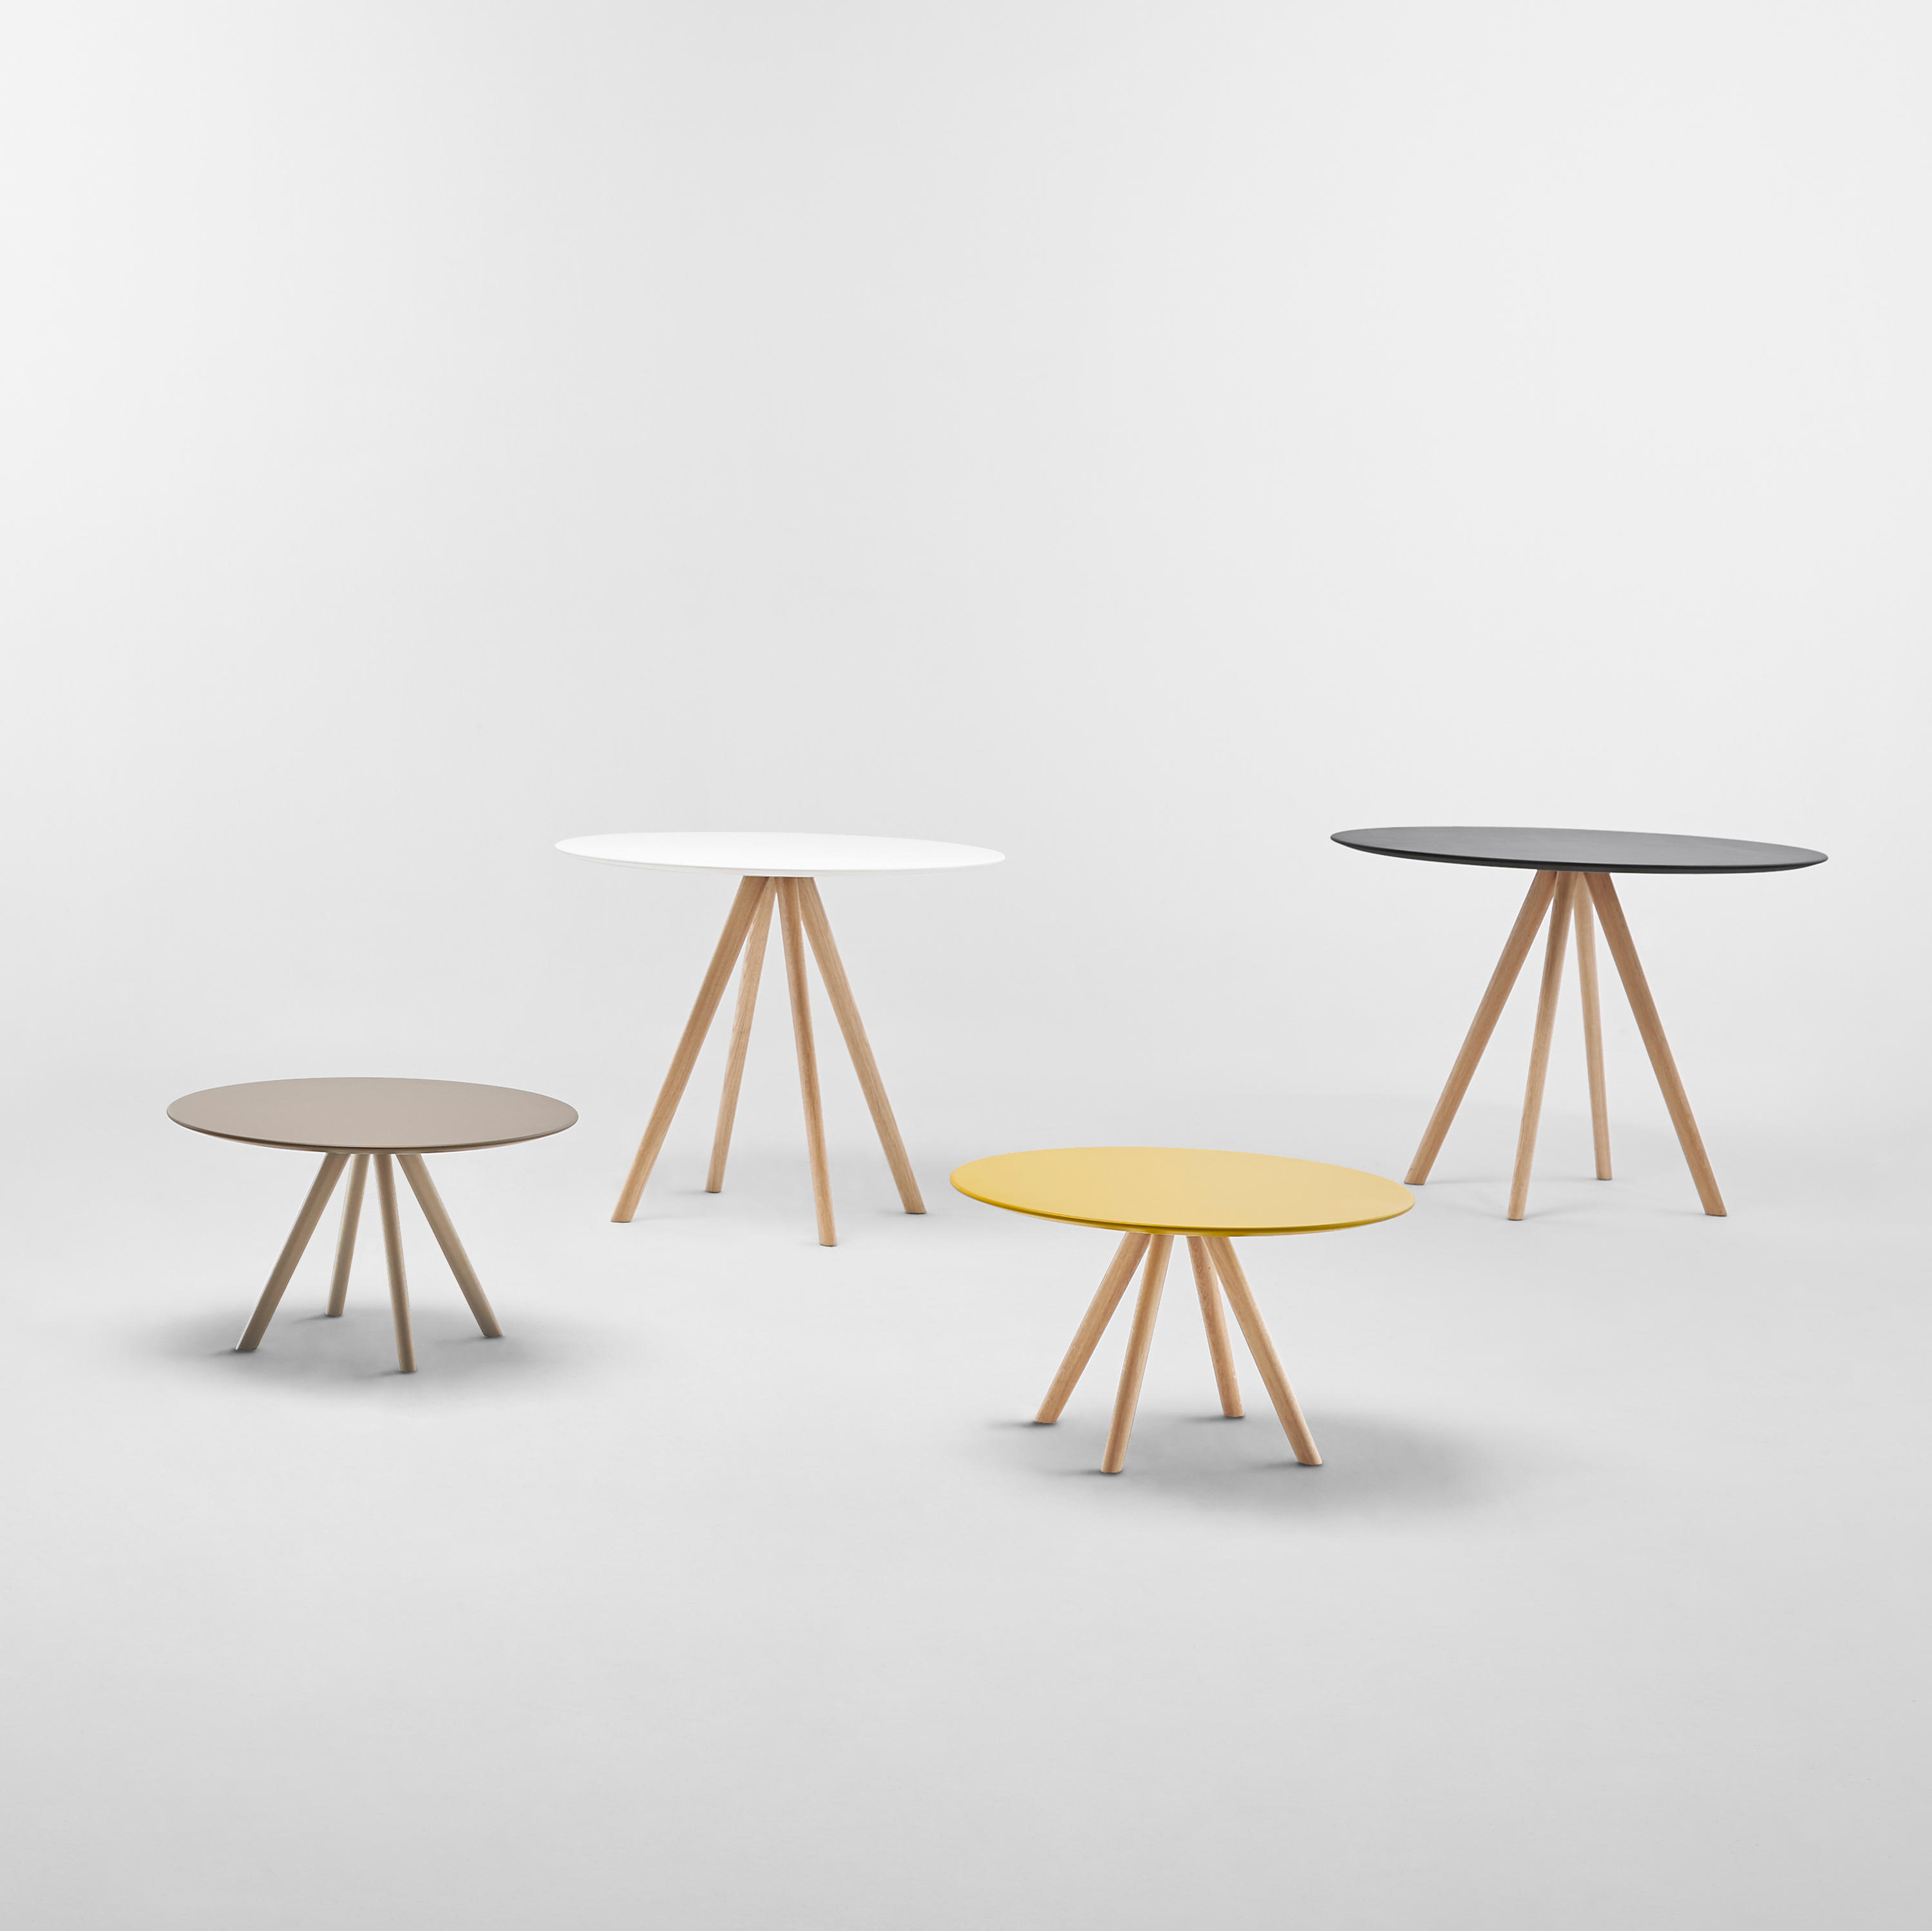 Stiks Tables by Christophe Pillet for Inclass